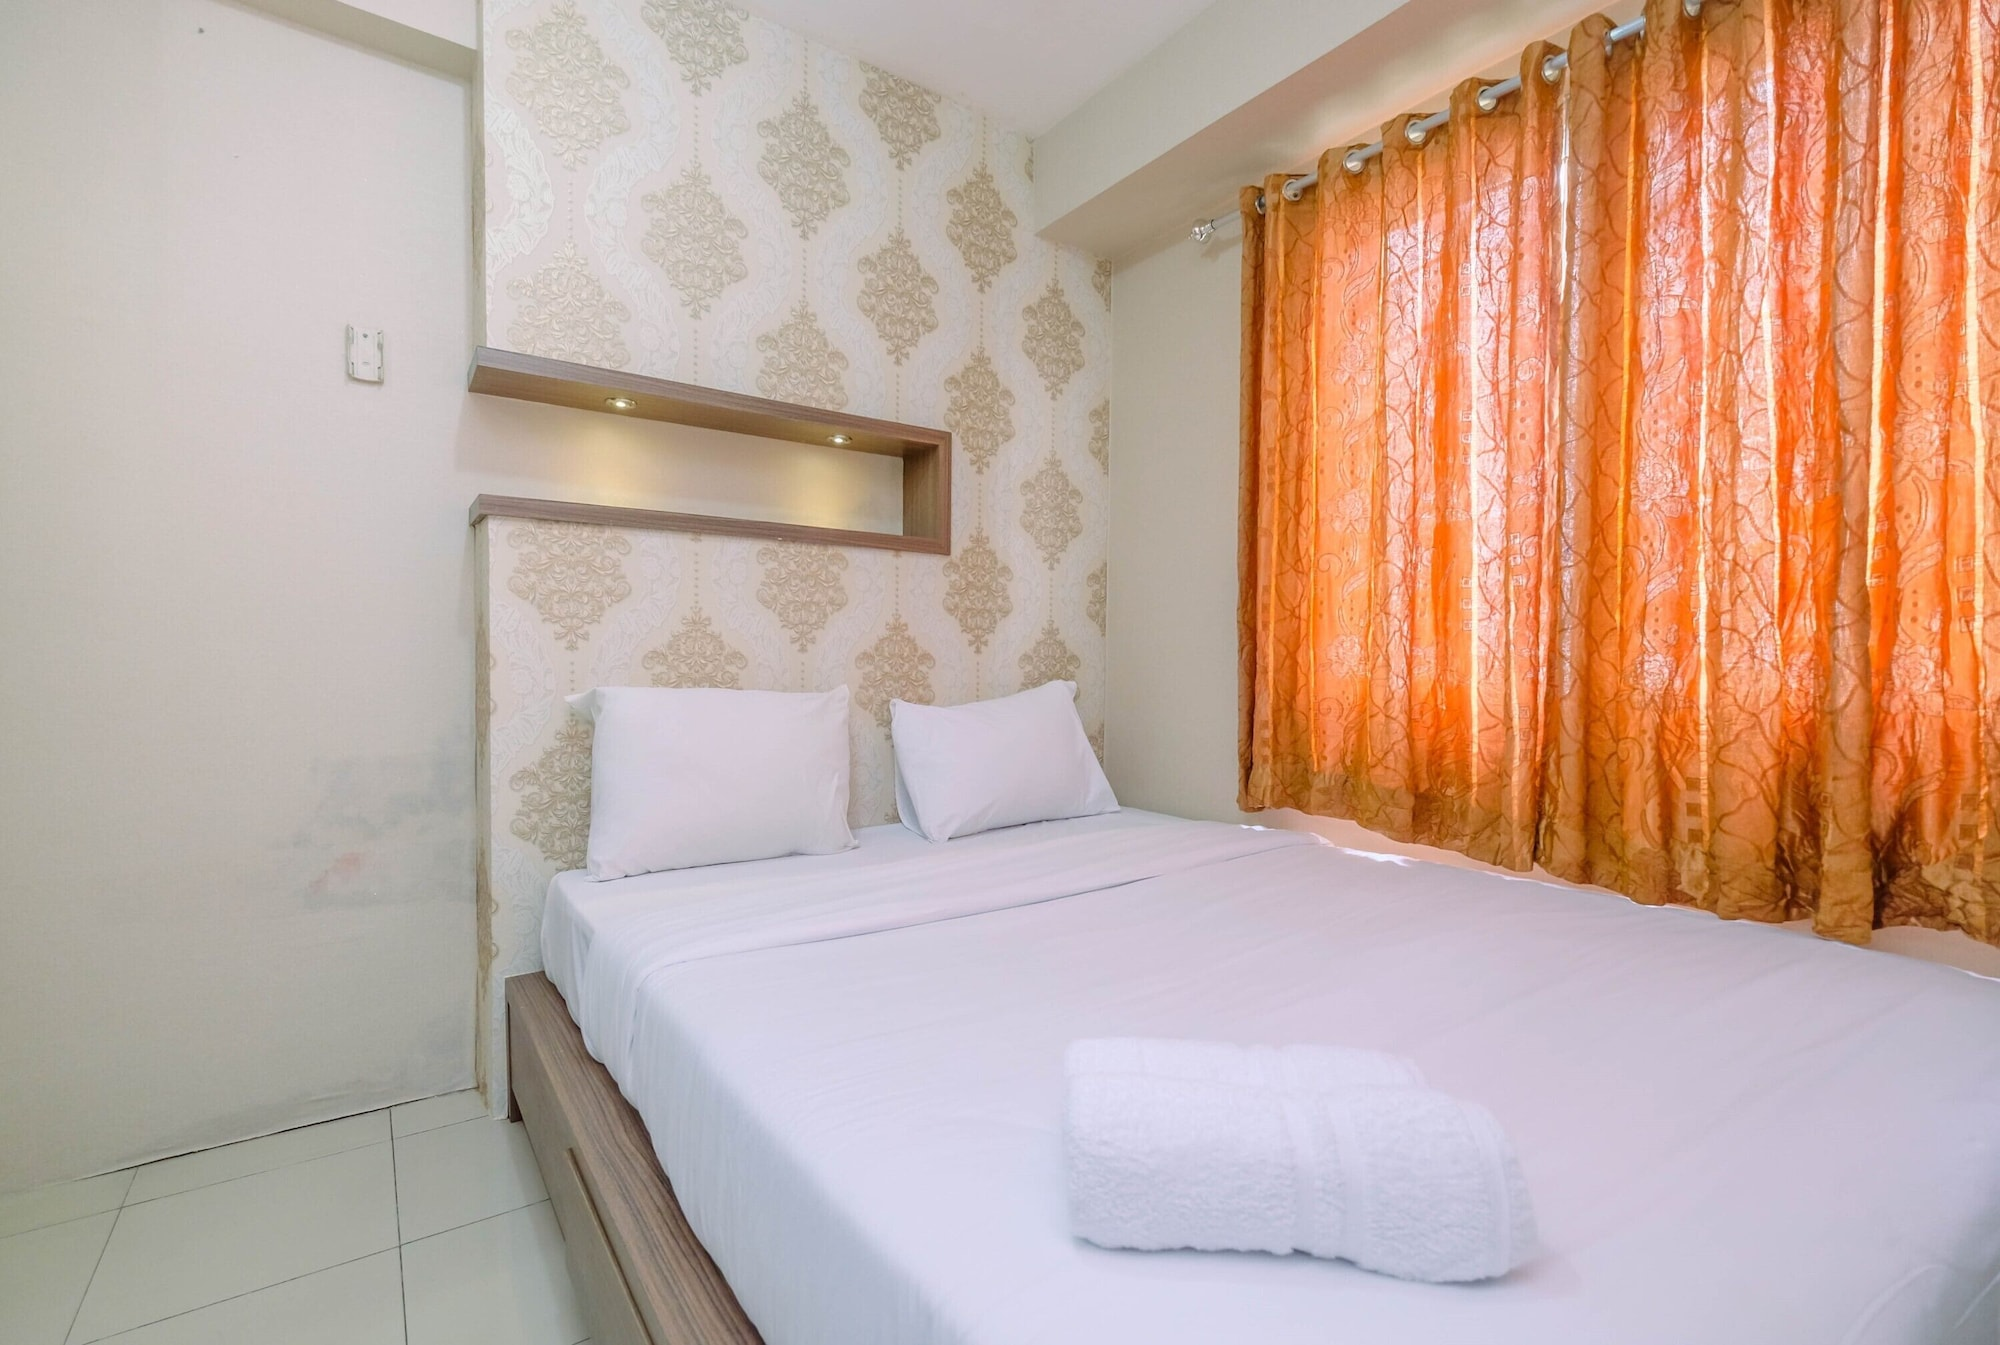 Warm and Cozy 2BR at Green Palace Kalibata Apartment, South Jakarta